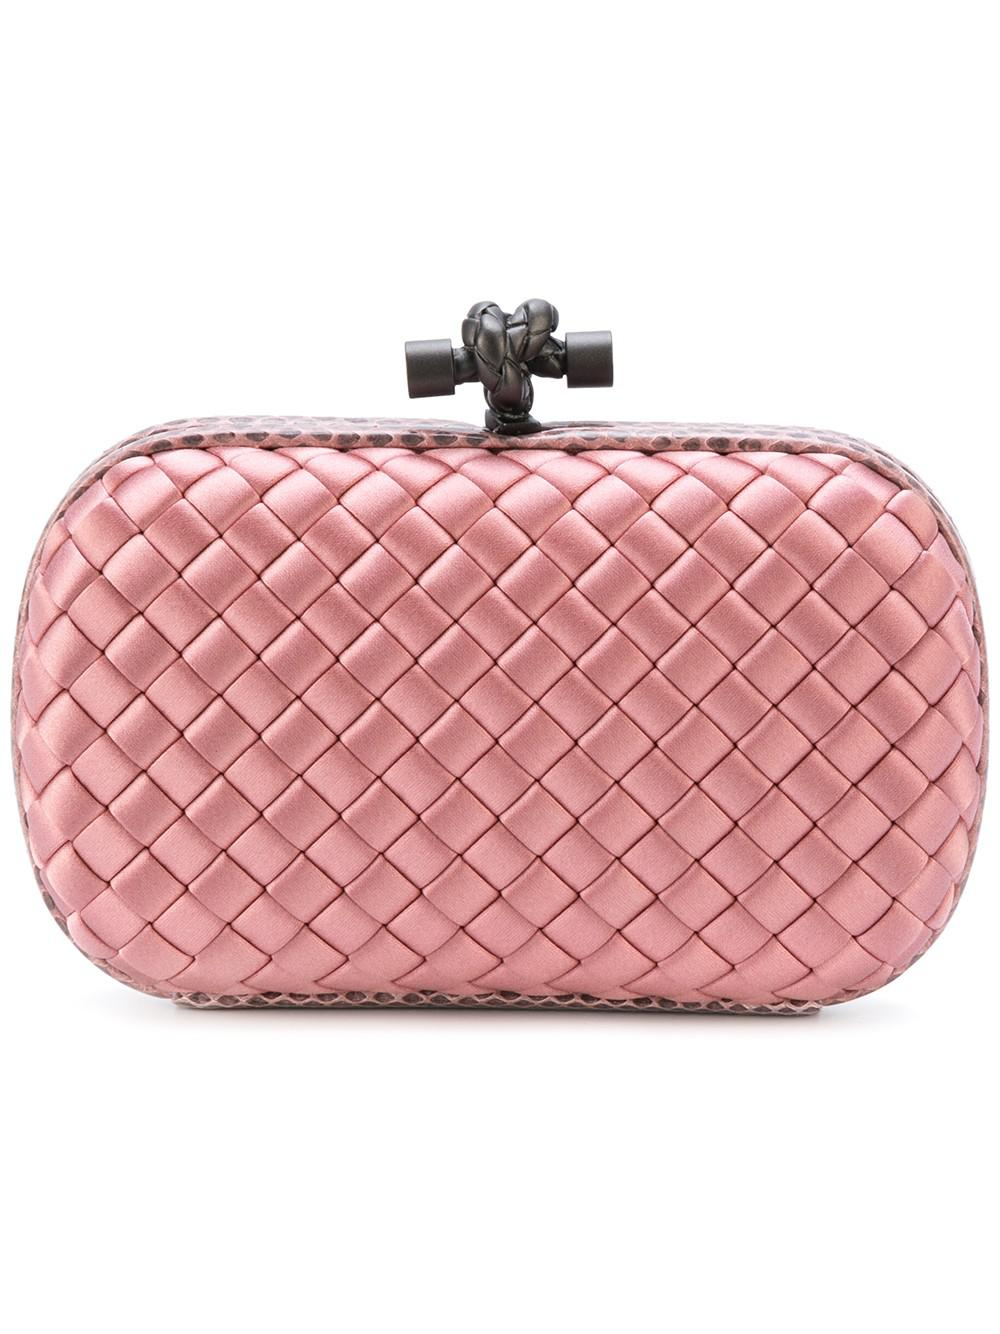 fd8dba65b6 Lyst - Bottega Veneta Satin And Snakeskin Knot Clutch in Pink